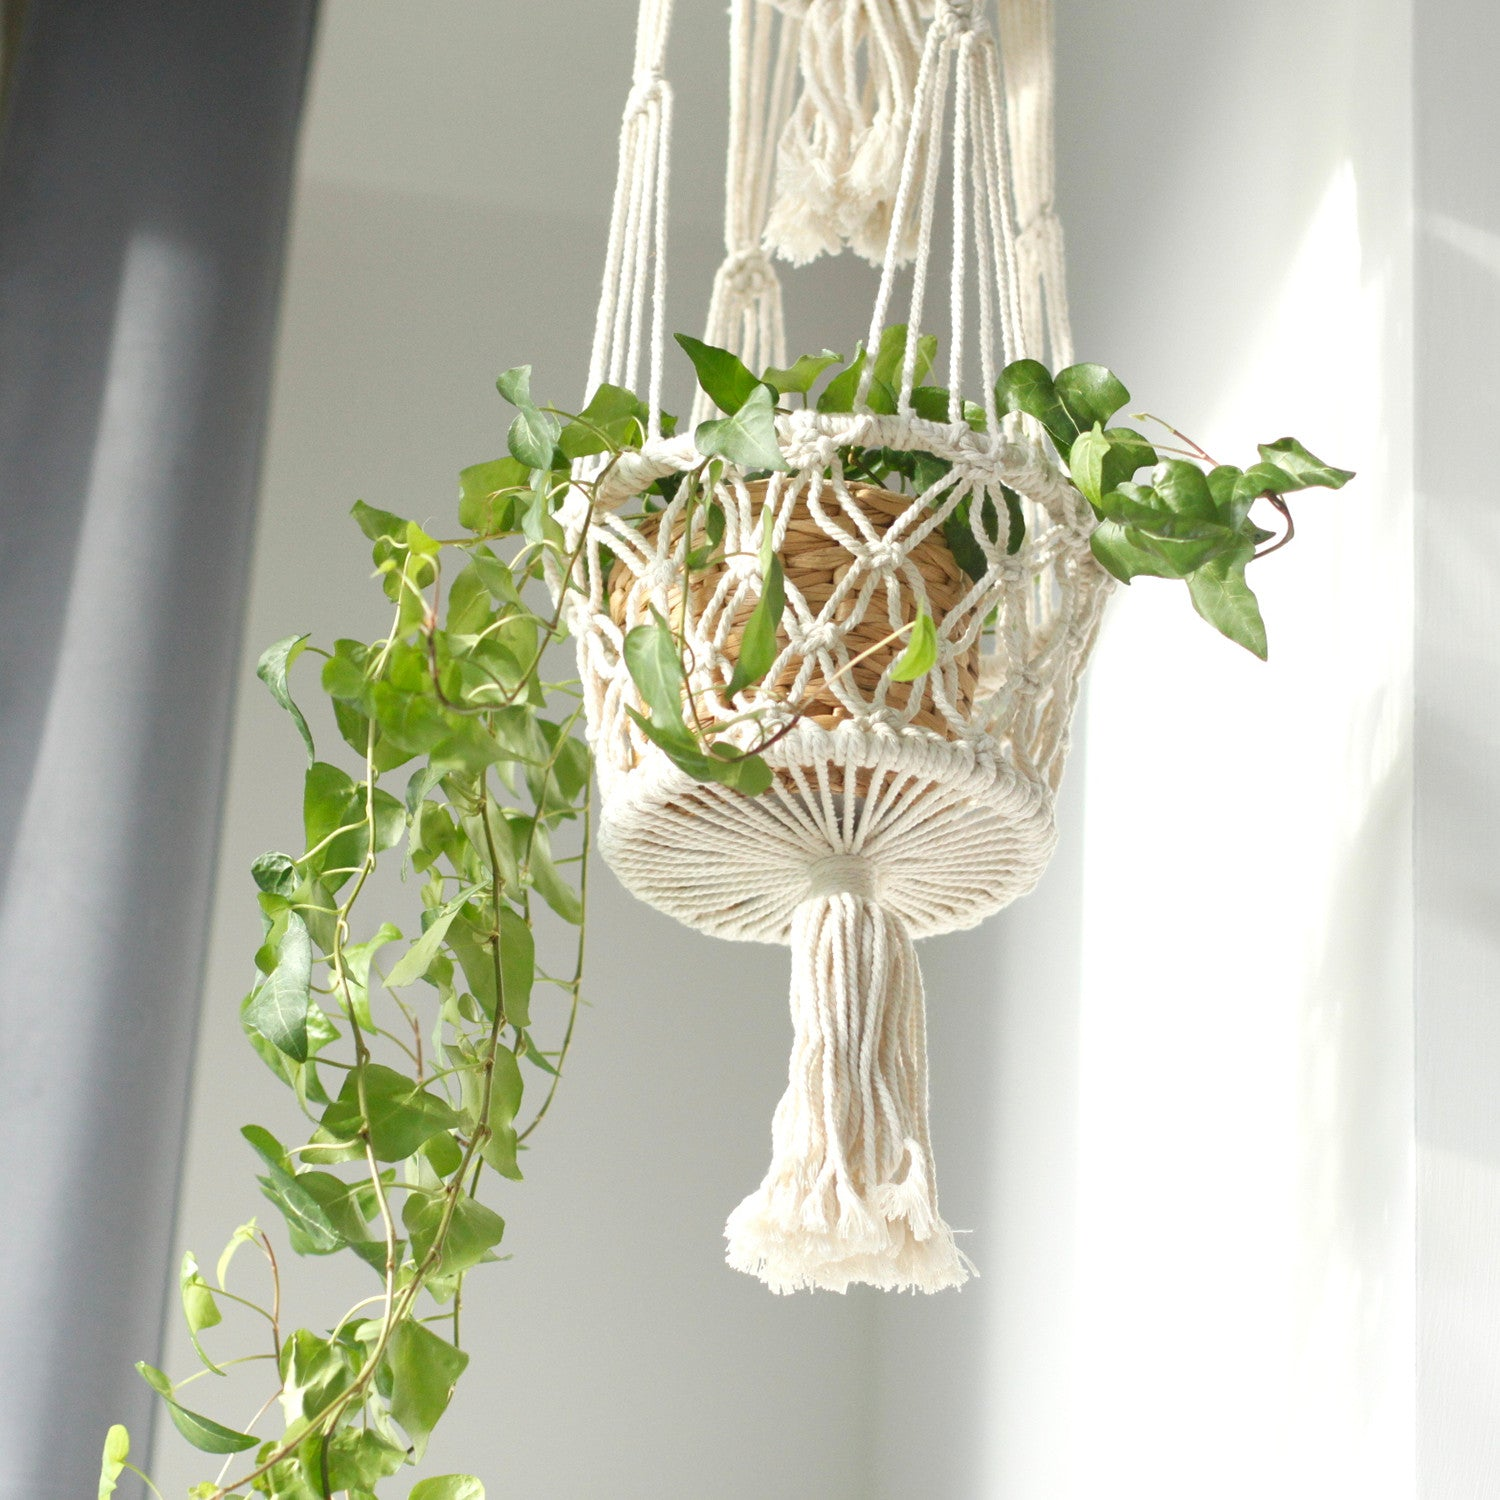 Macrame Pot Holder - Double Holder - Ellie J Shoppe